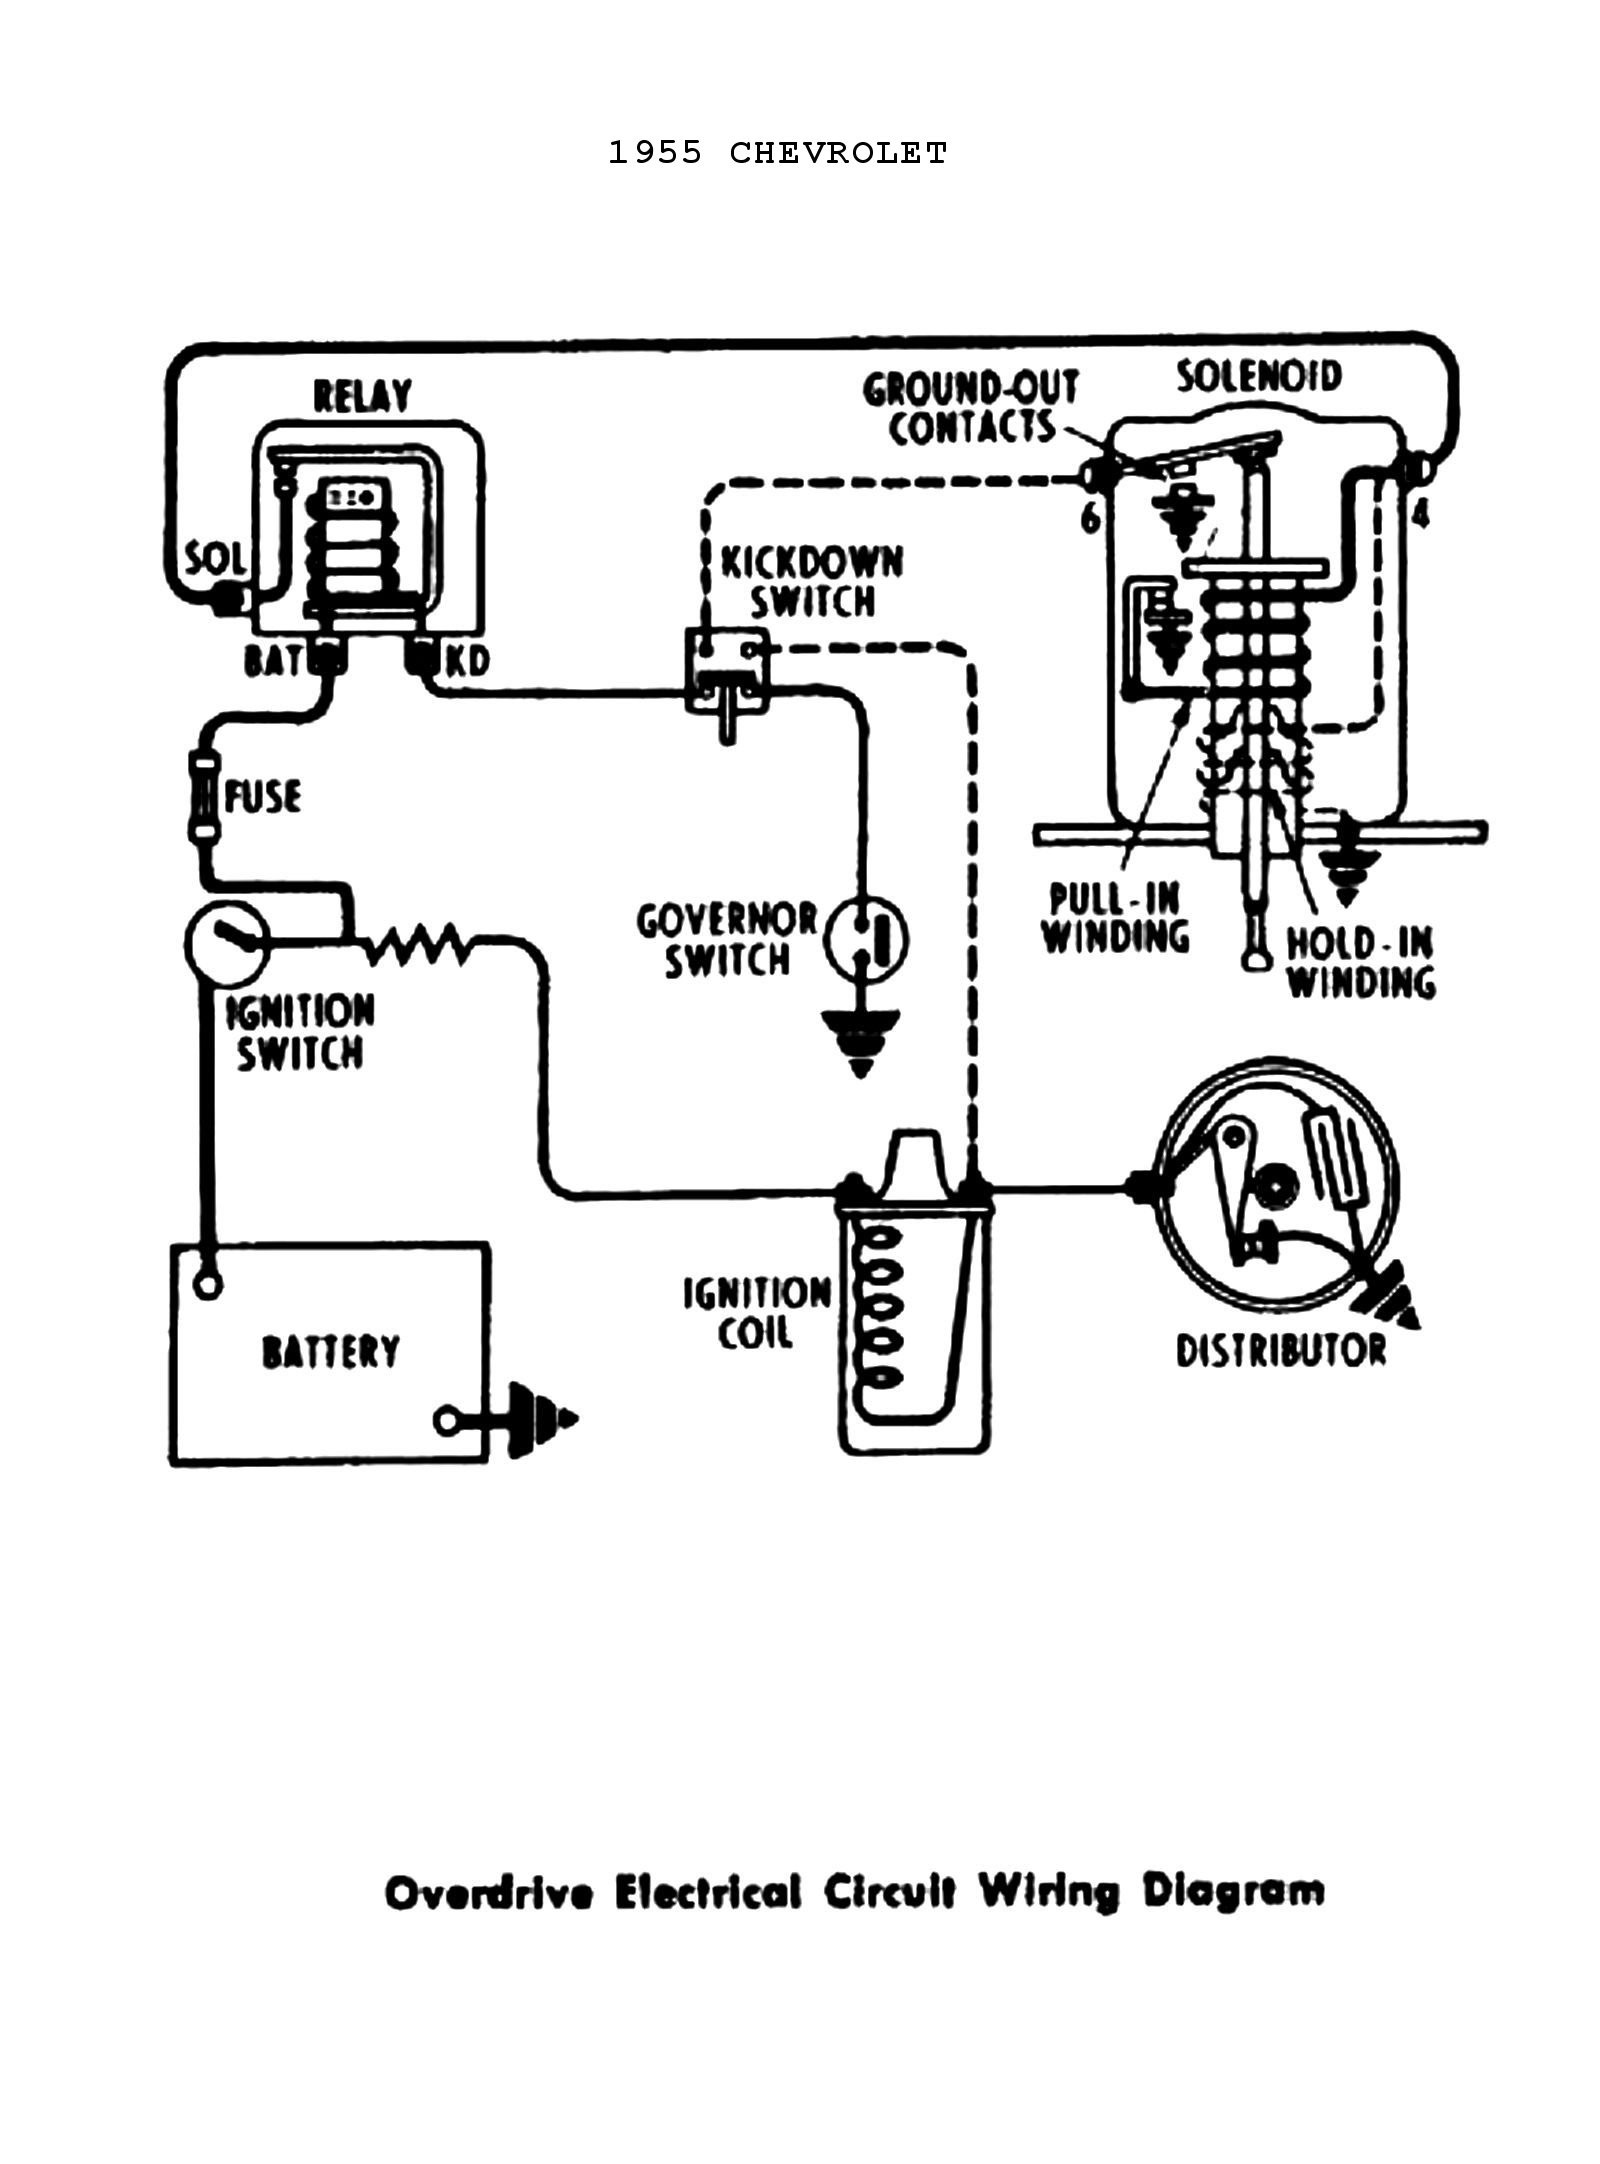 hight resolution of mack truck fuel system diagram 1955 chevy fuel tank diagram 1955 chevy ignition wiring diagram of